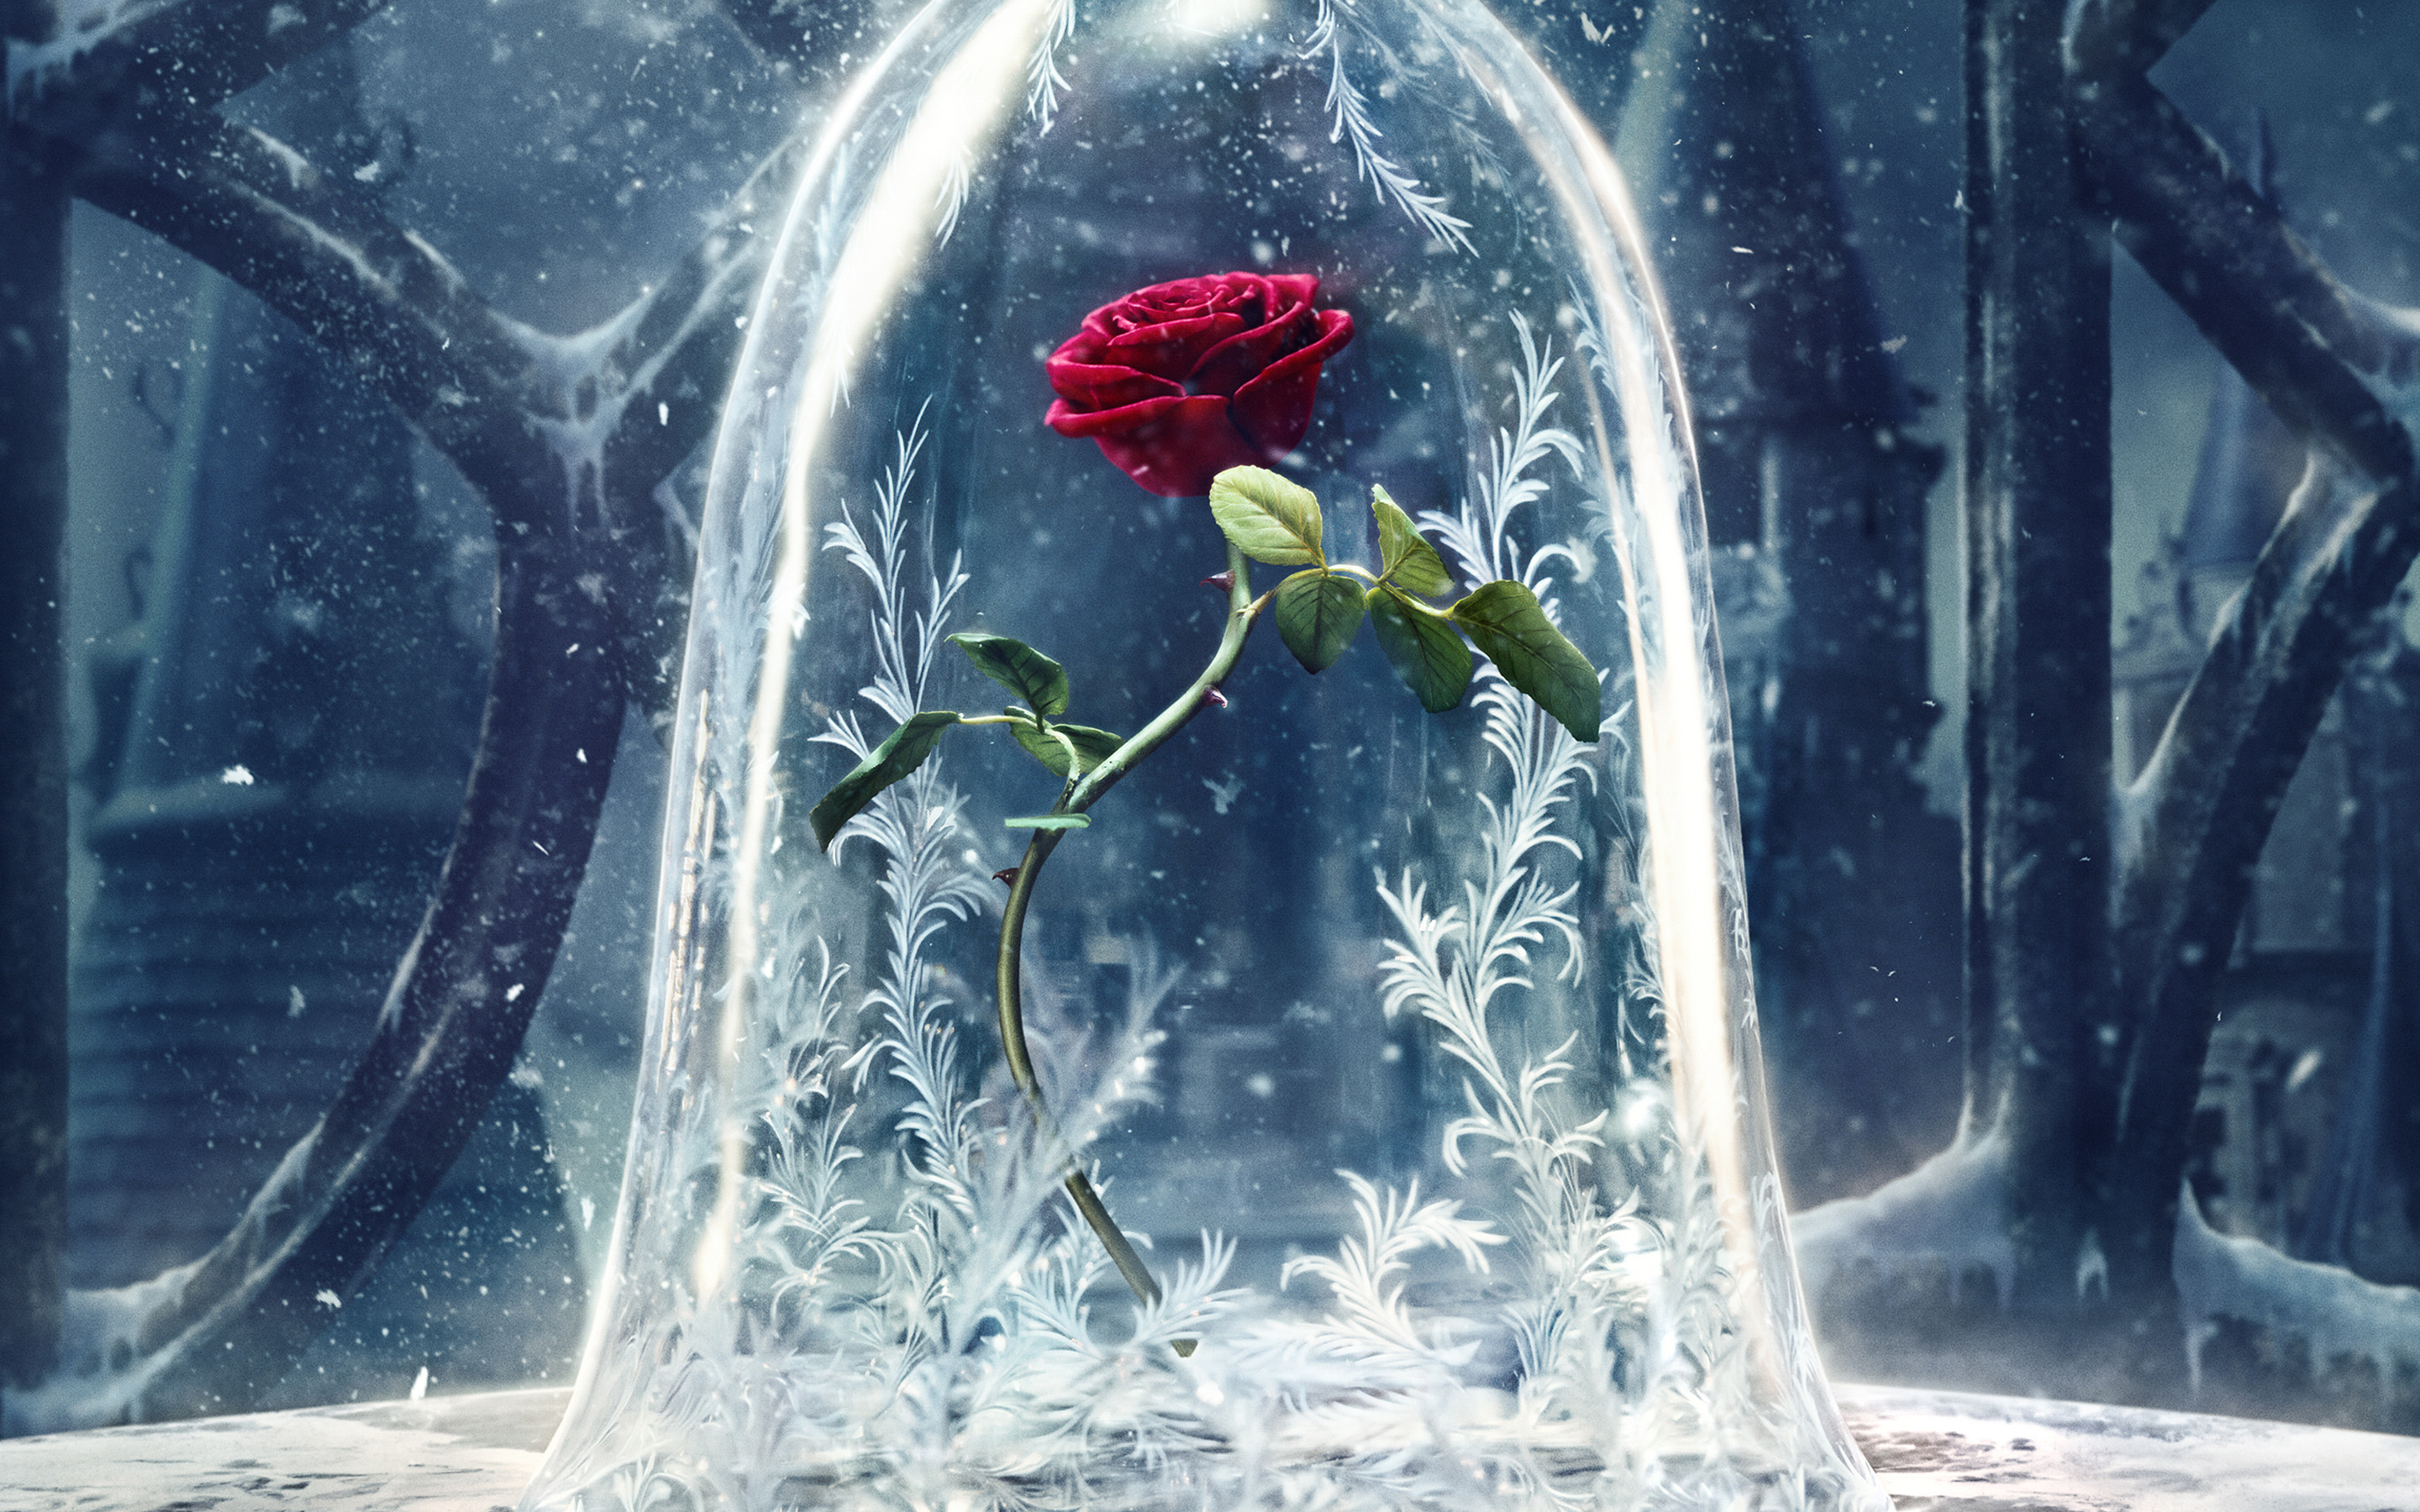 Beauty and the Beast Wallpaper 79 images 2880x1800